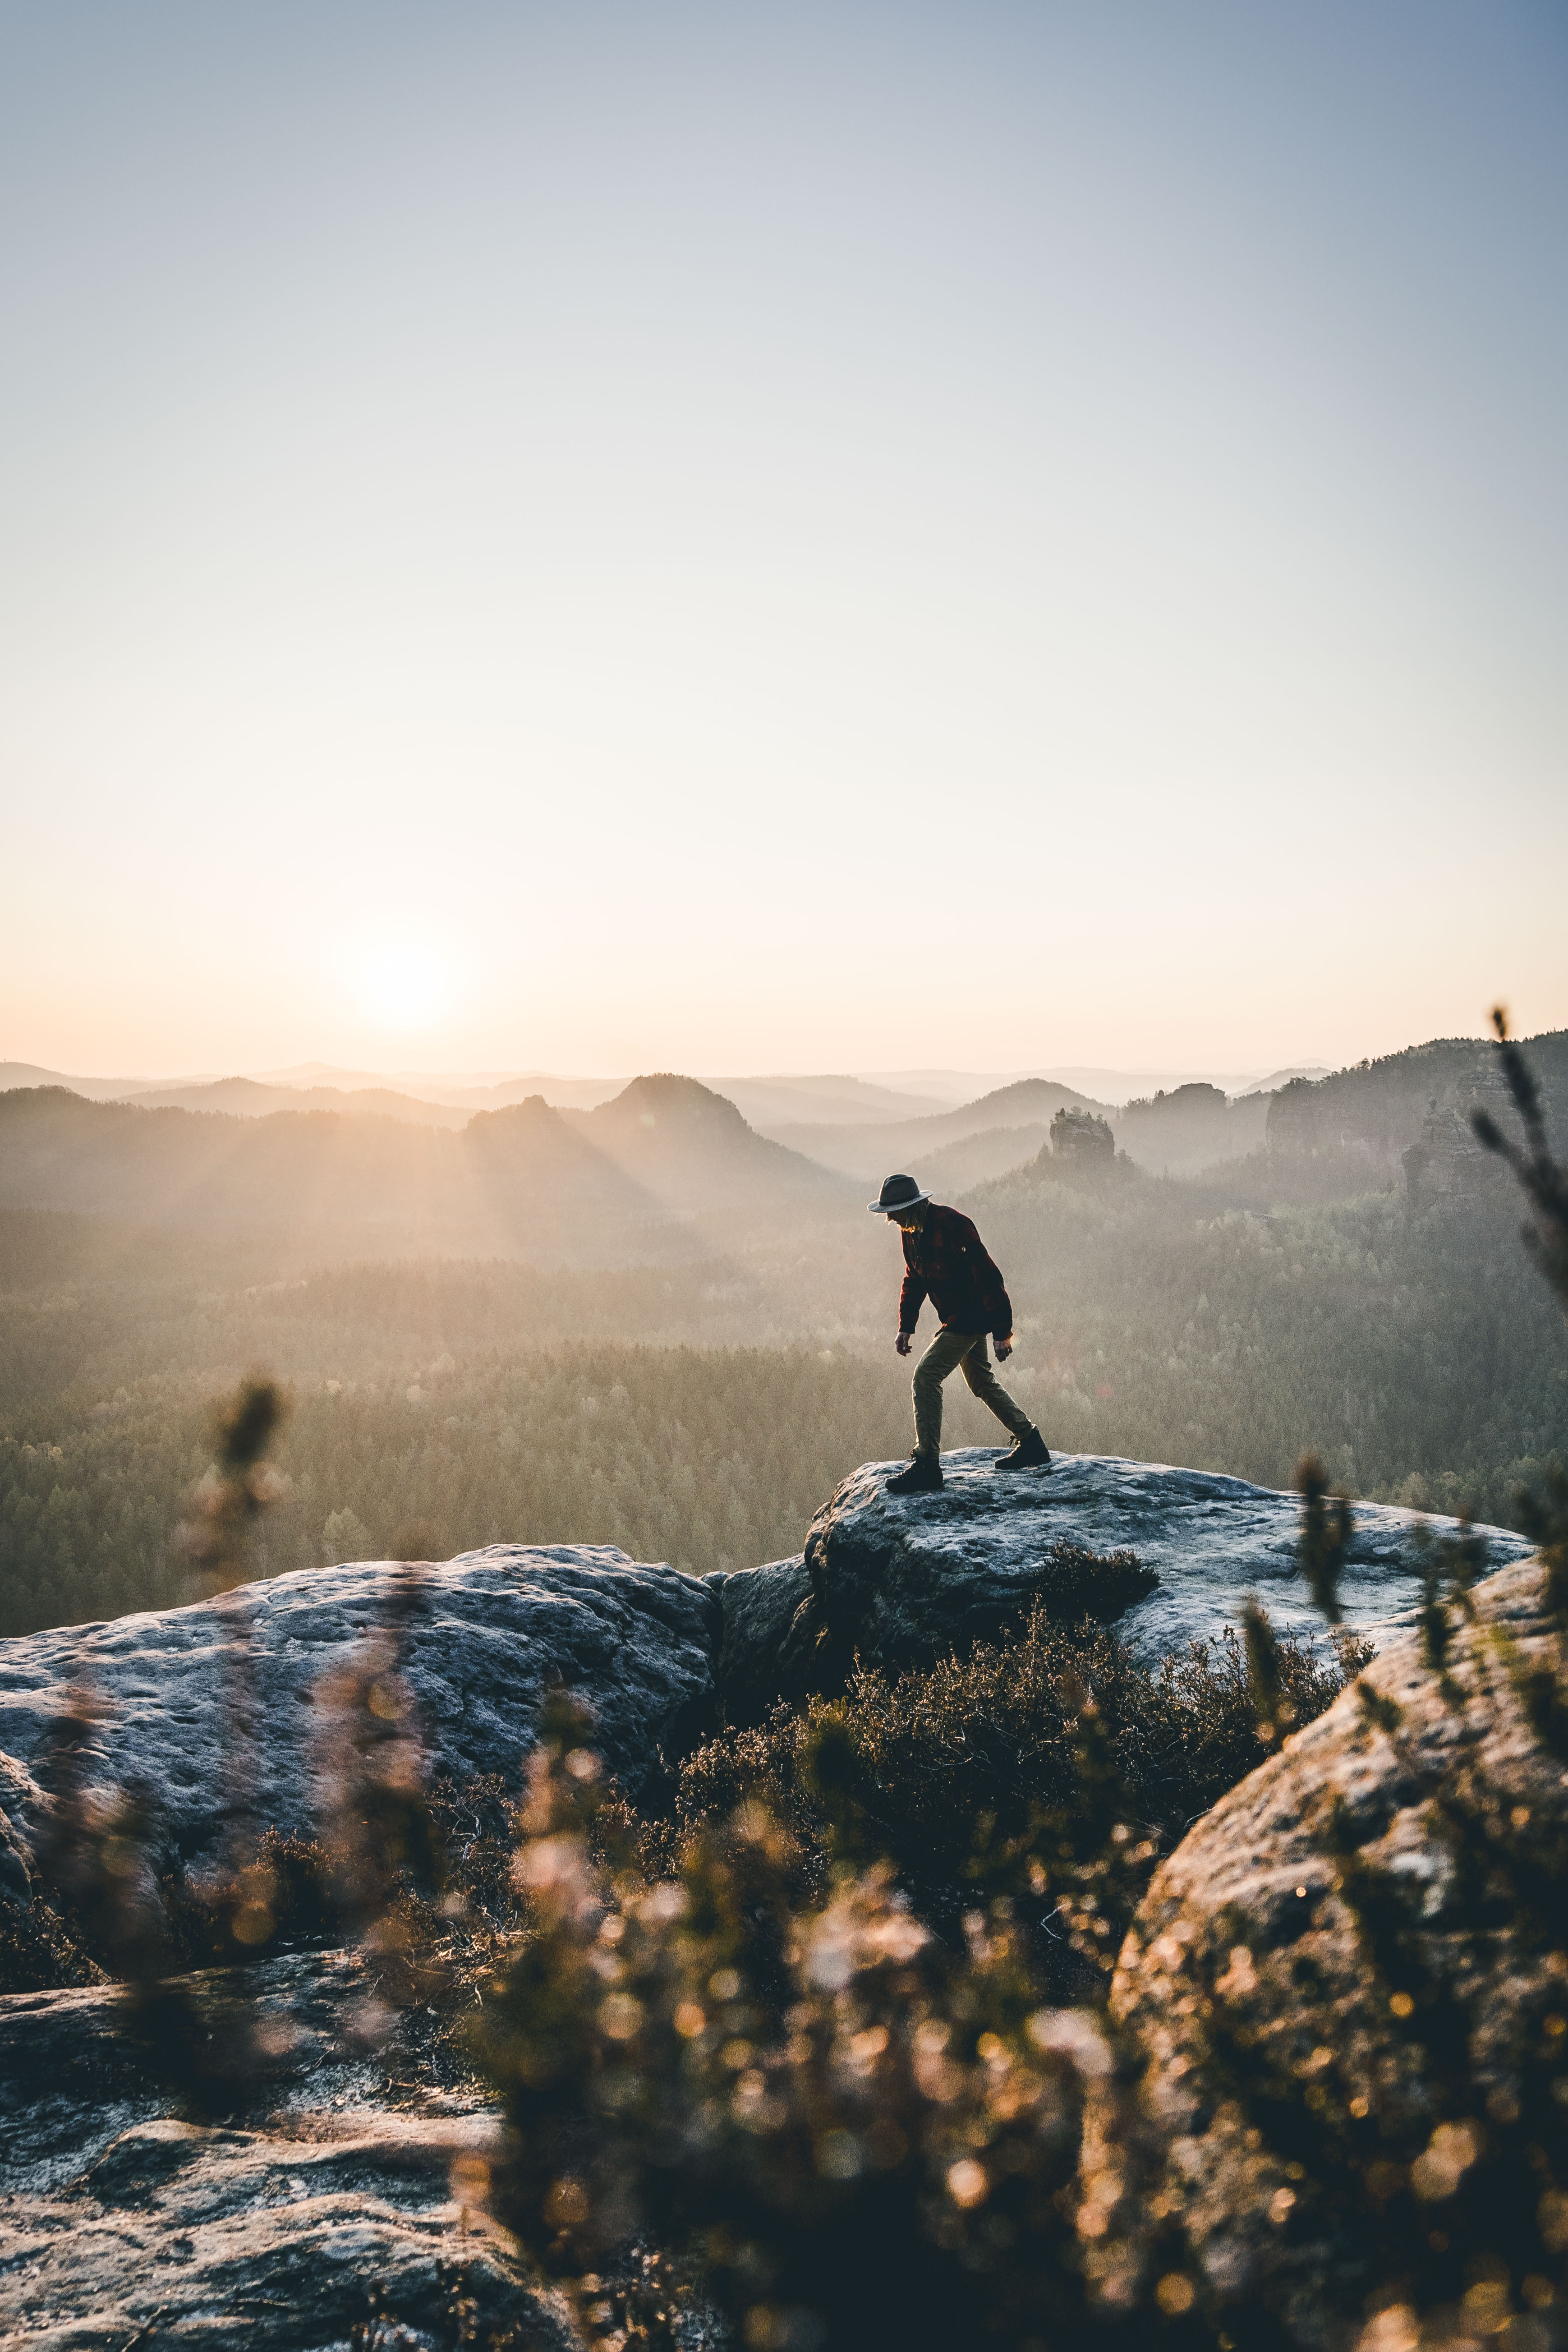 Person Hiking Overlooking Landscape